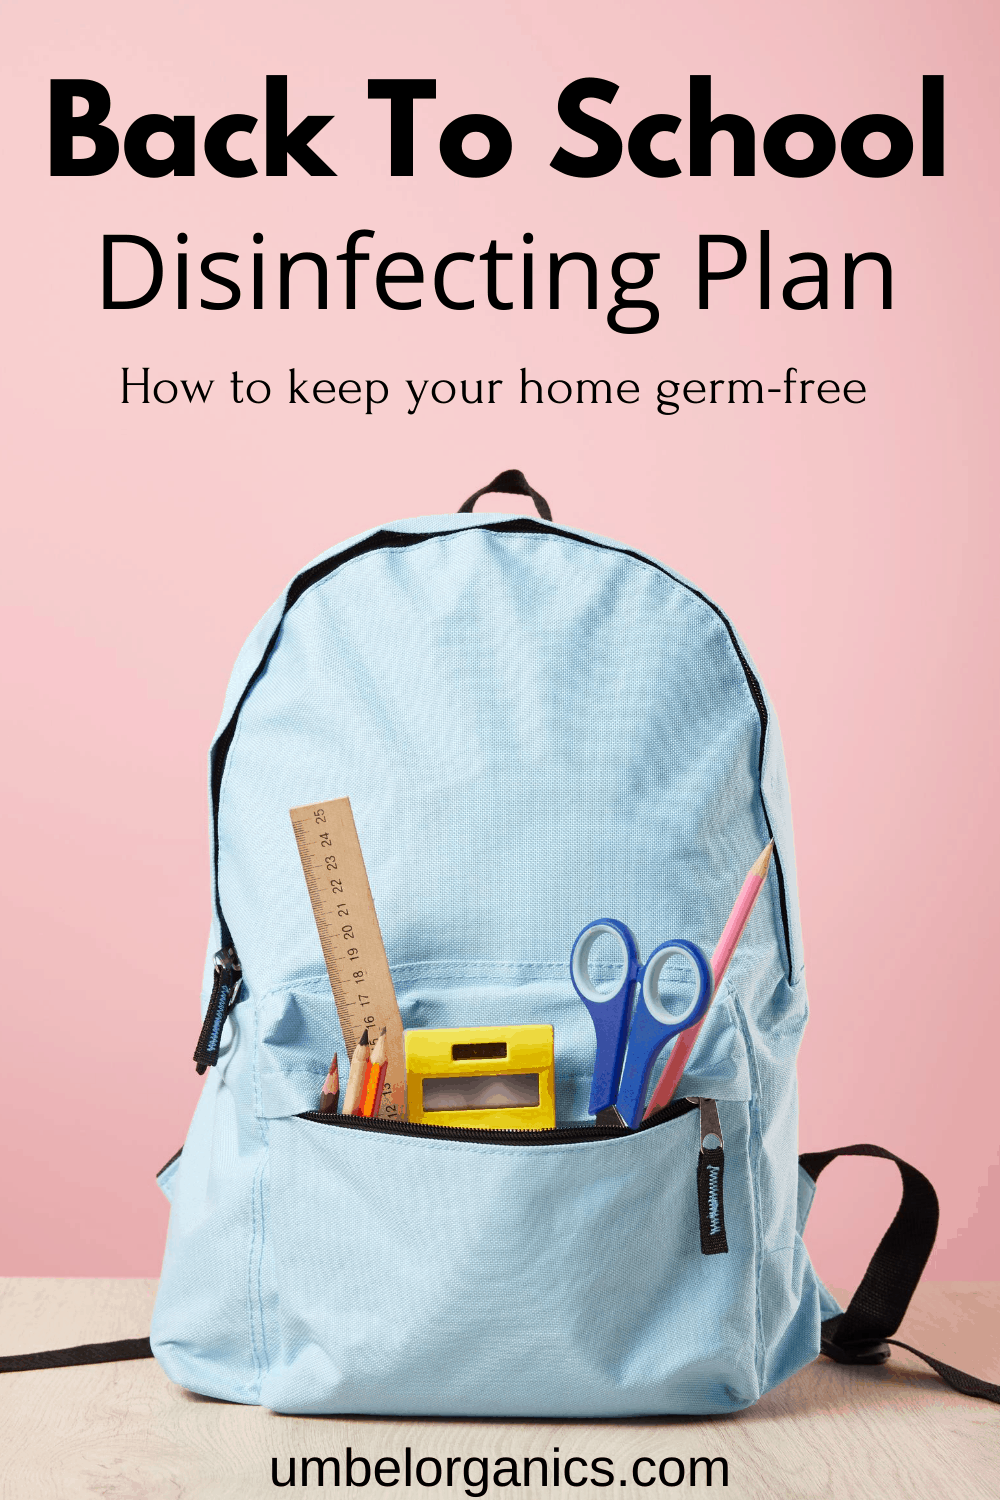 Back to school disinfecting plan